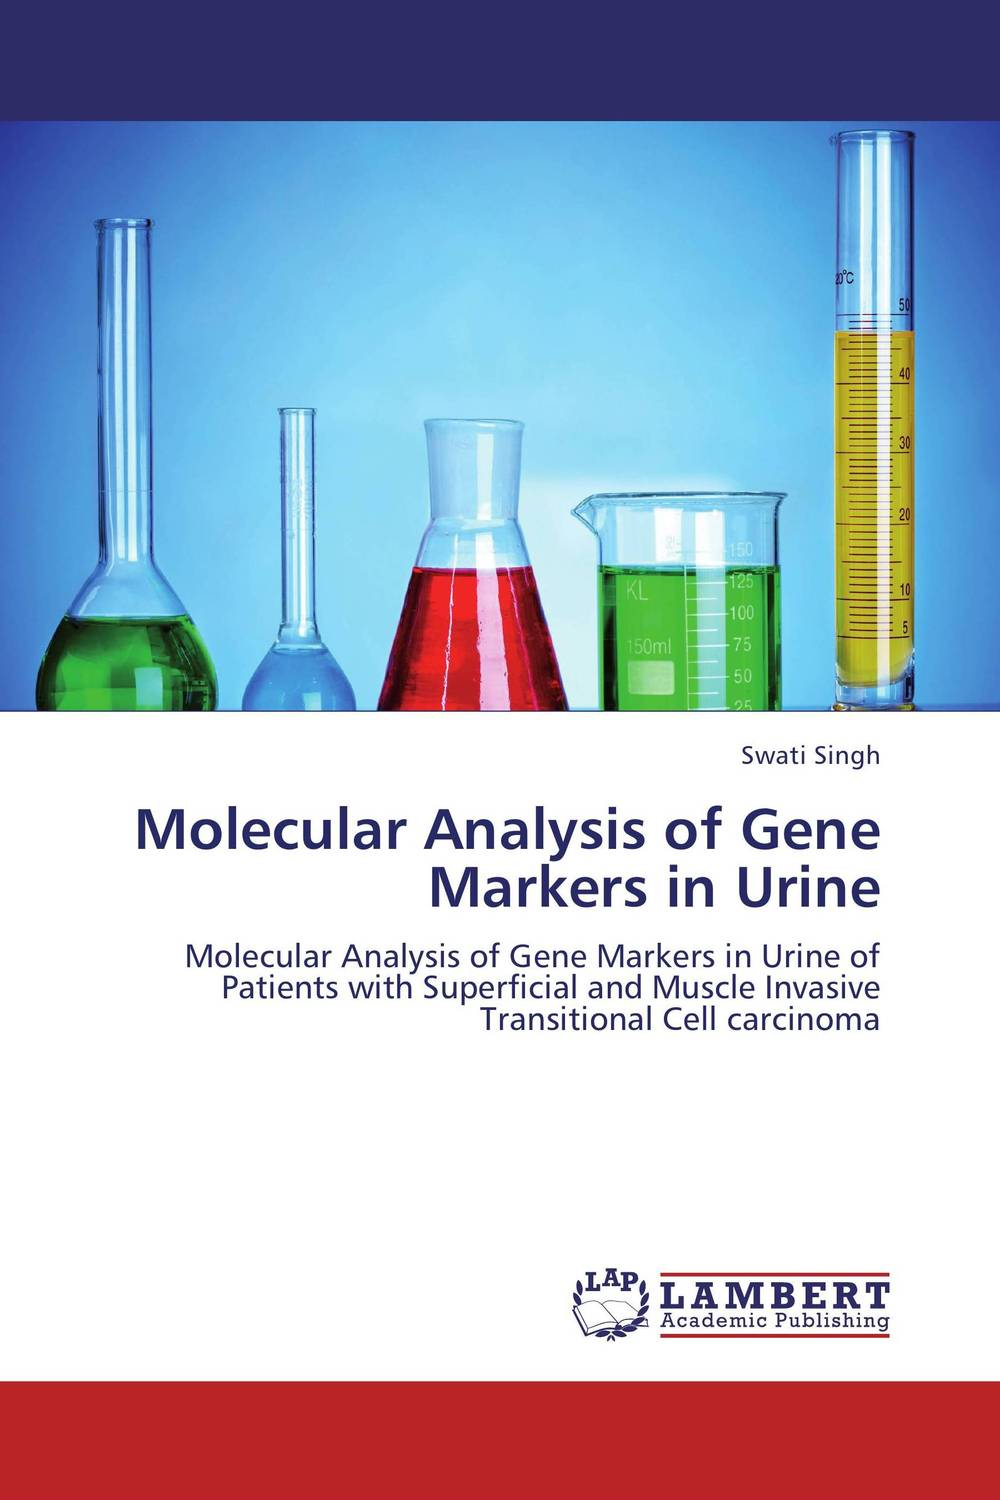 Molecular Analysis of Gene Markers in Urine chethan kumar m r rajendra prasad s and radha b n identificaction and standerdization of molecular markers